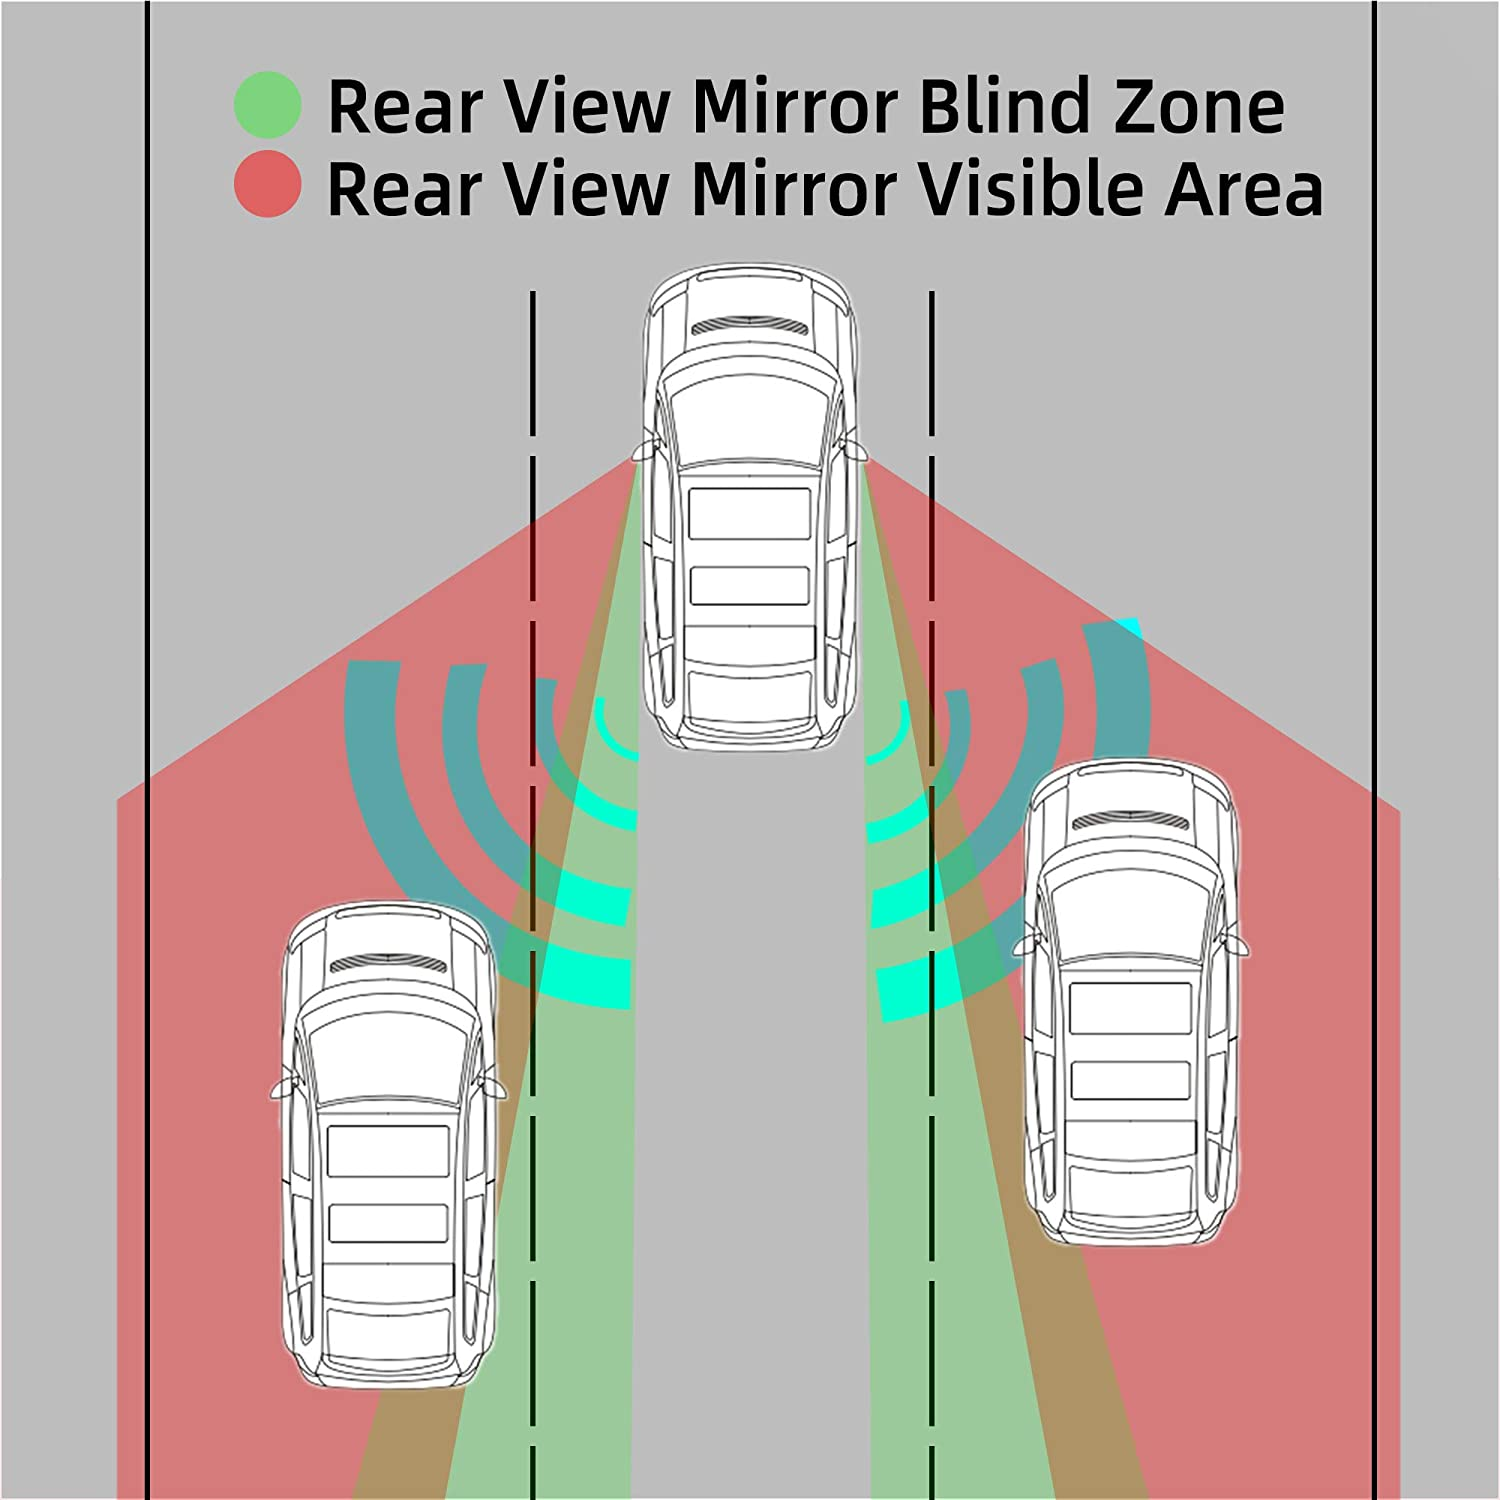 Five Bananas Blind Spot Detection System BSD Change Lane Safer BSA BSM Blind Spot Monitoring Assistant 24Ghz Microwave Sensors Car Driving Security Kit